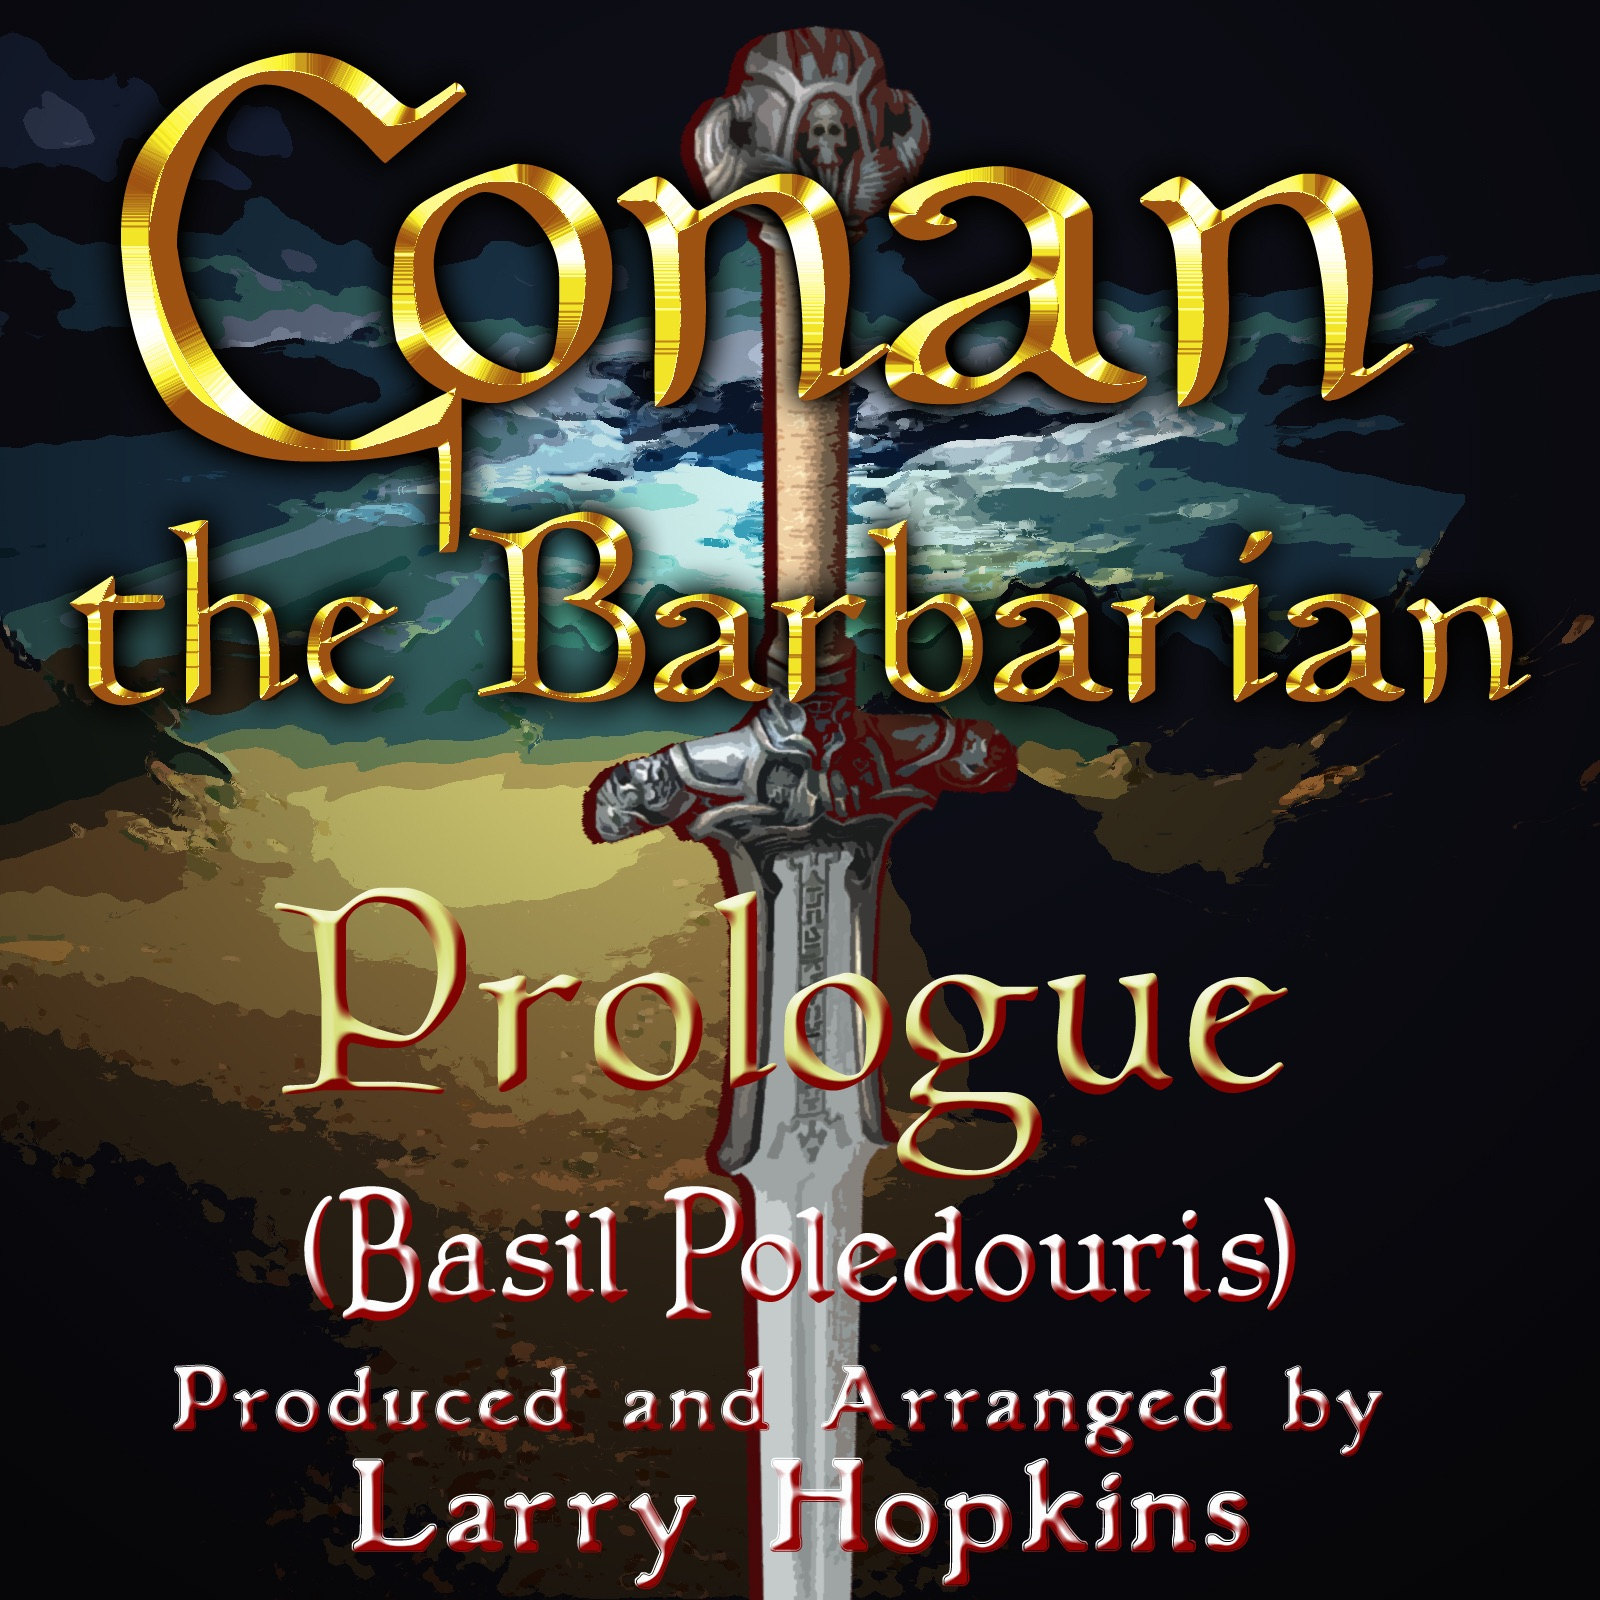 Prologue from Conan the Barbarian (Cover) - Single